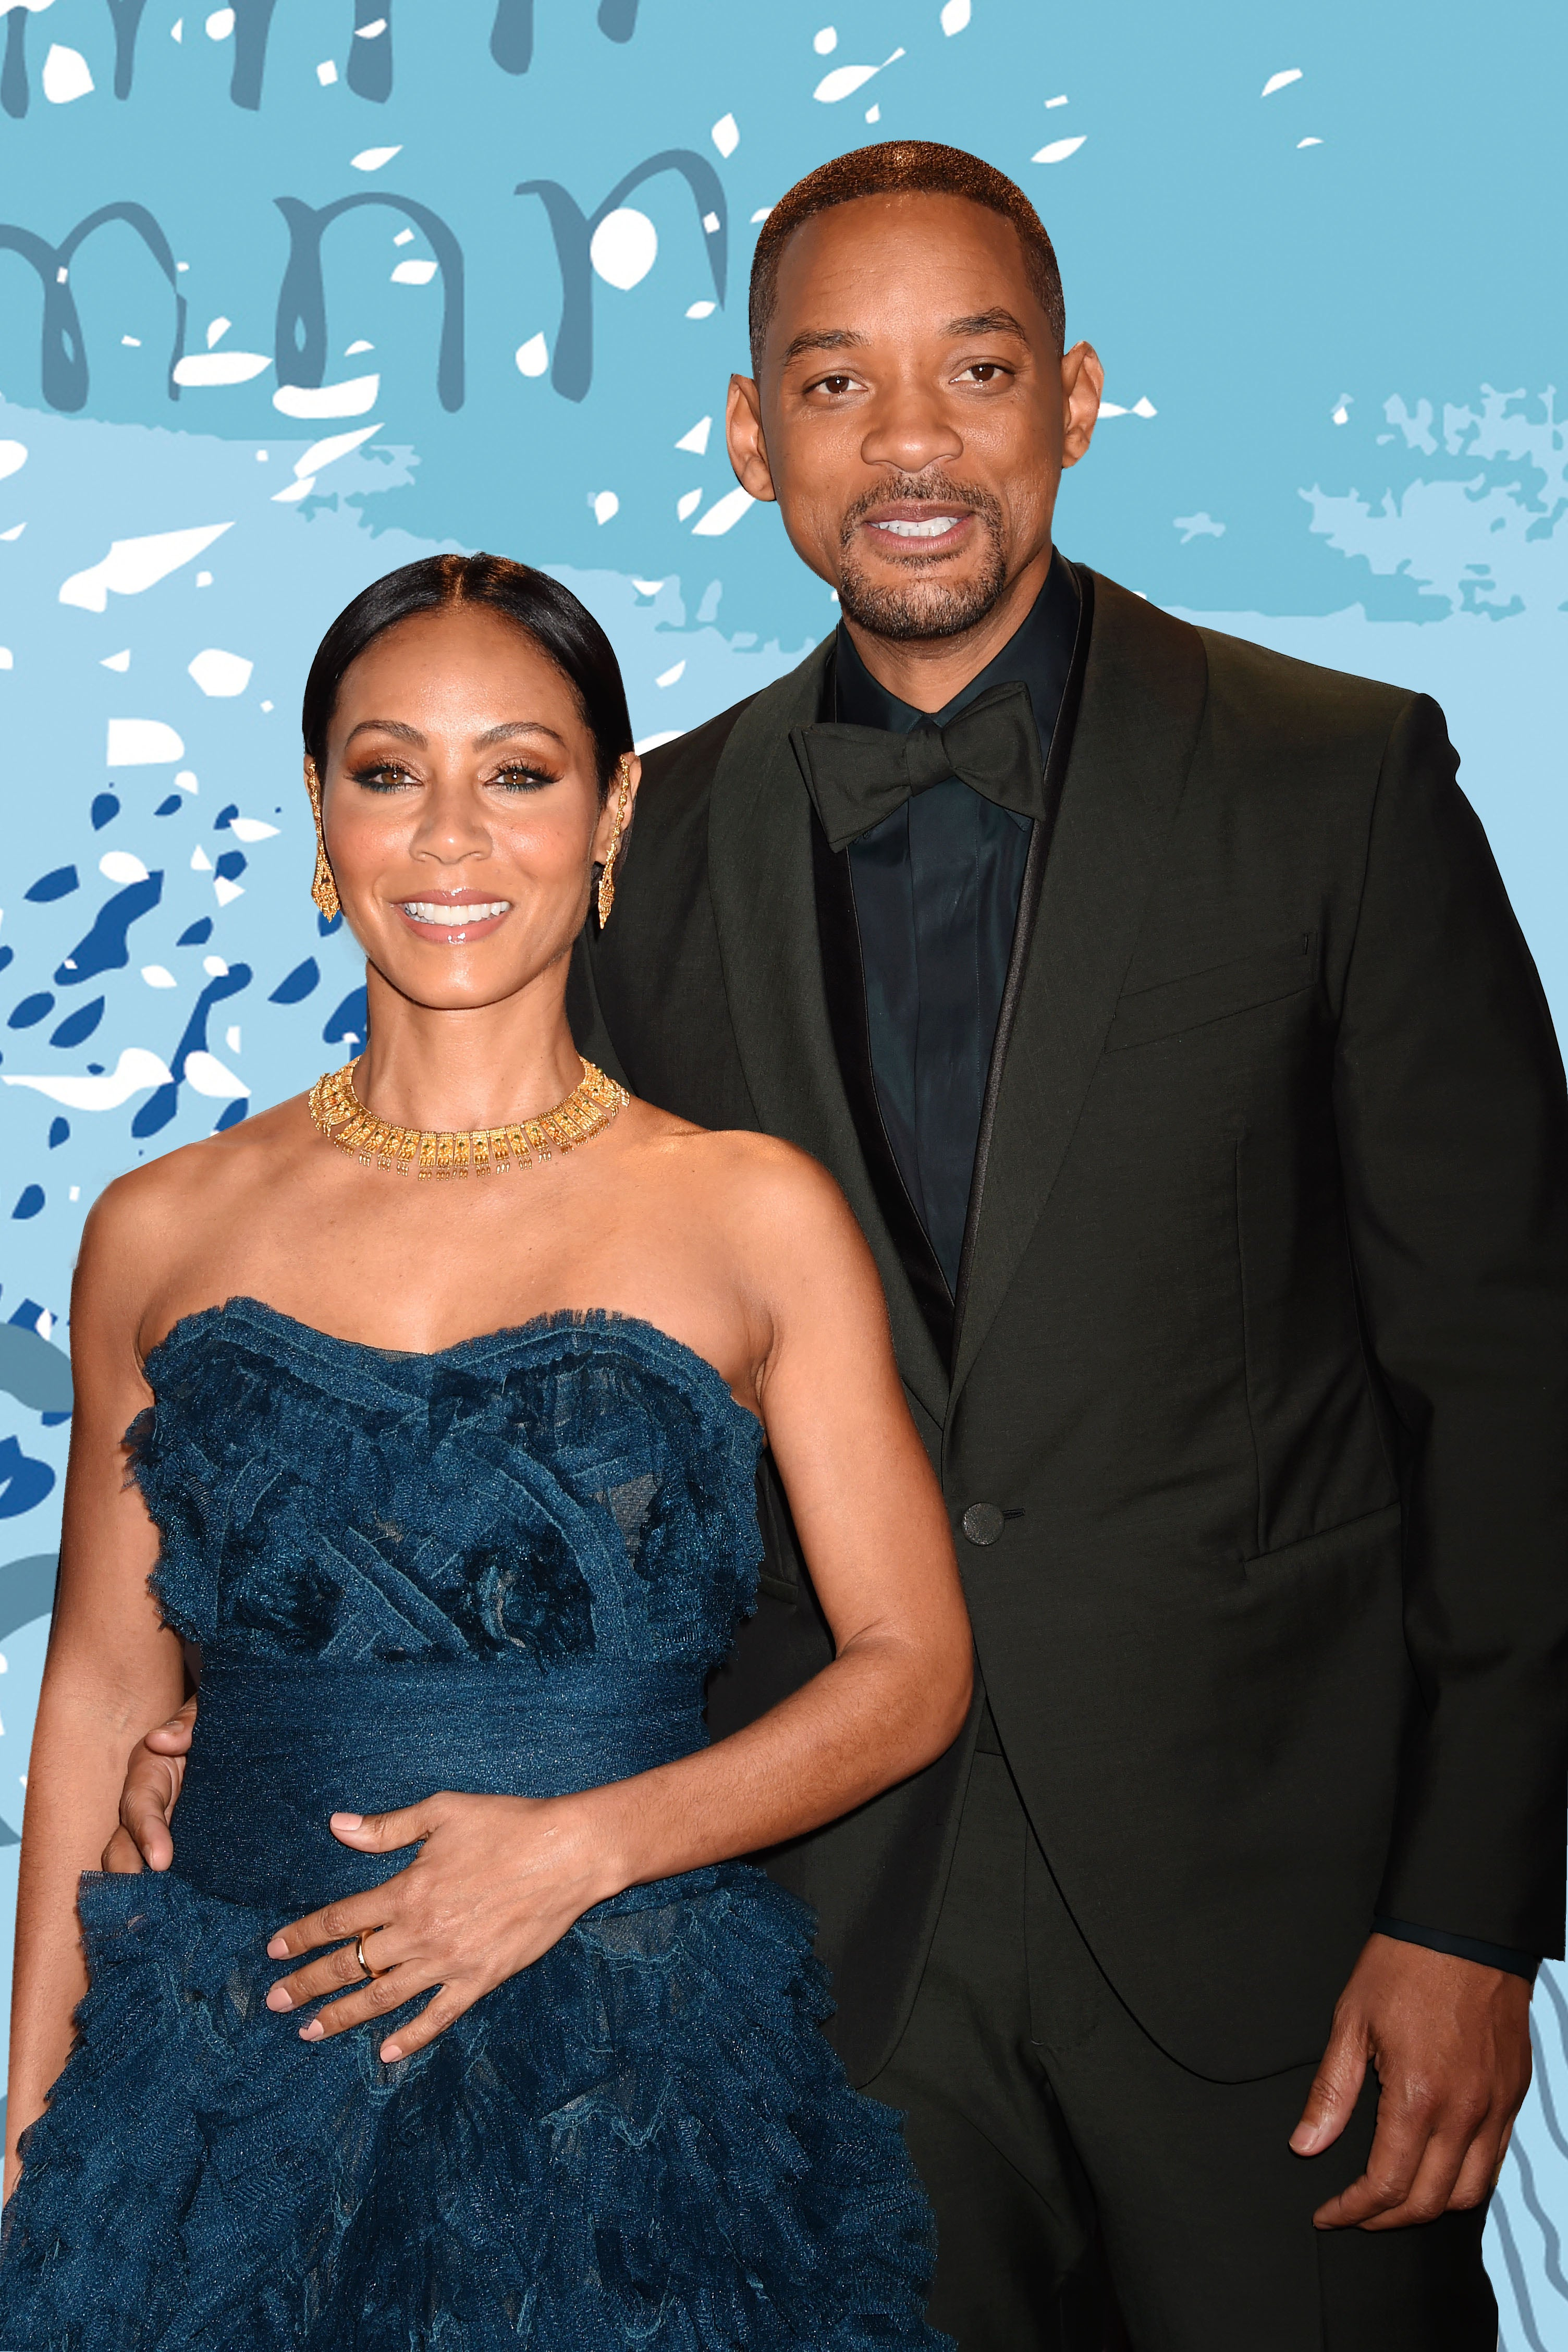 Will Smith and Jada Pinkett Smith Are Having A Hilarious Instagram Beef and We Can't Stop Smiling